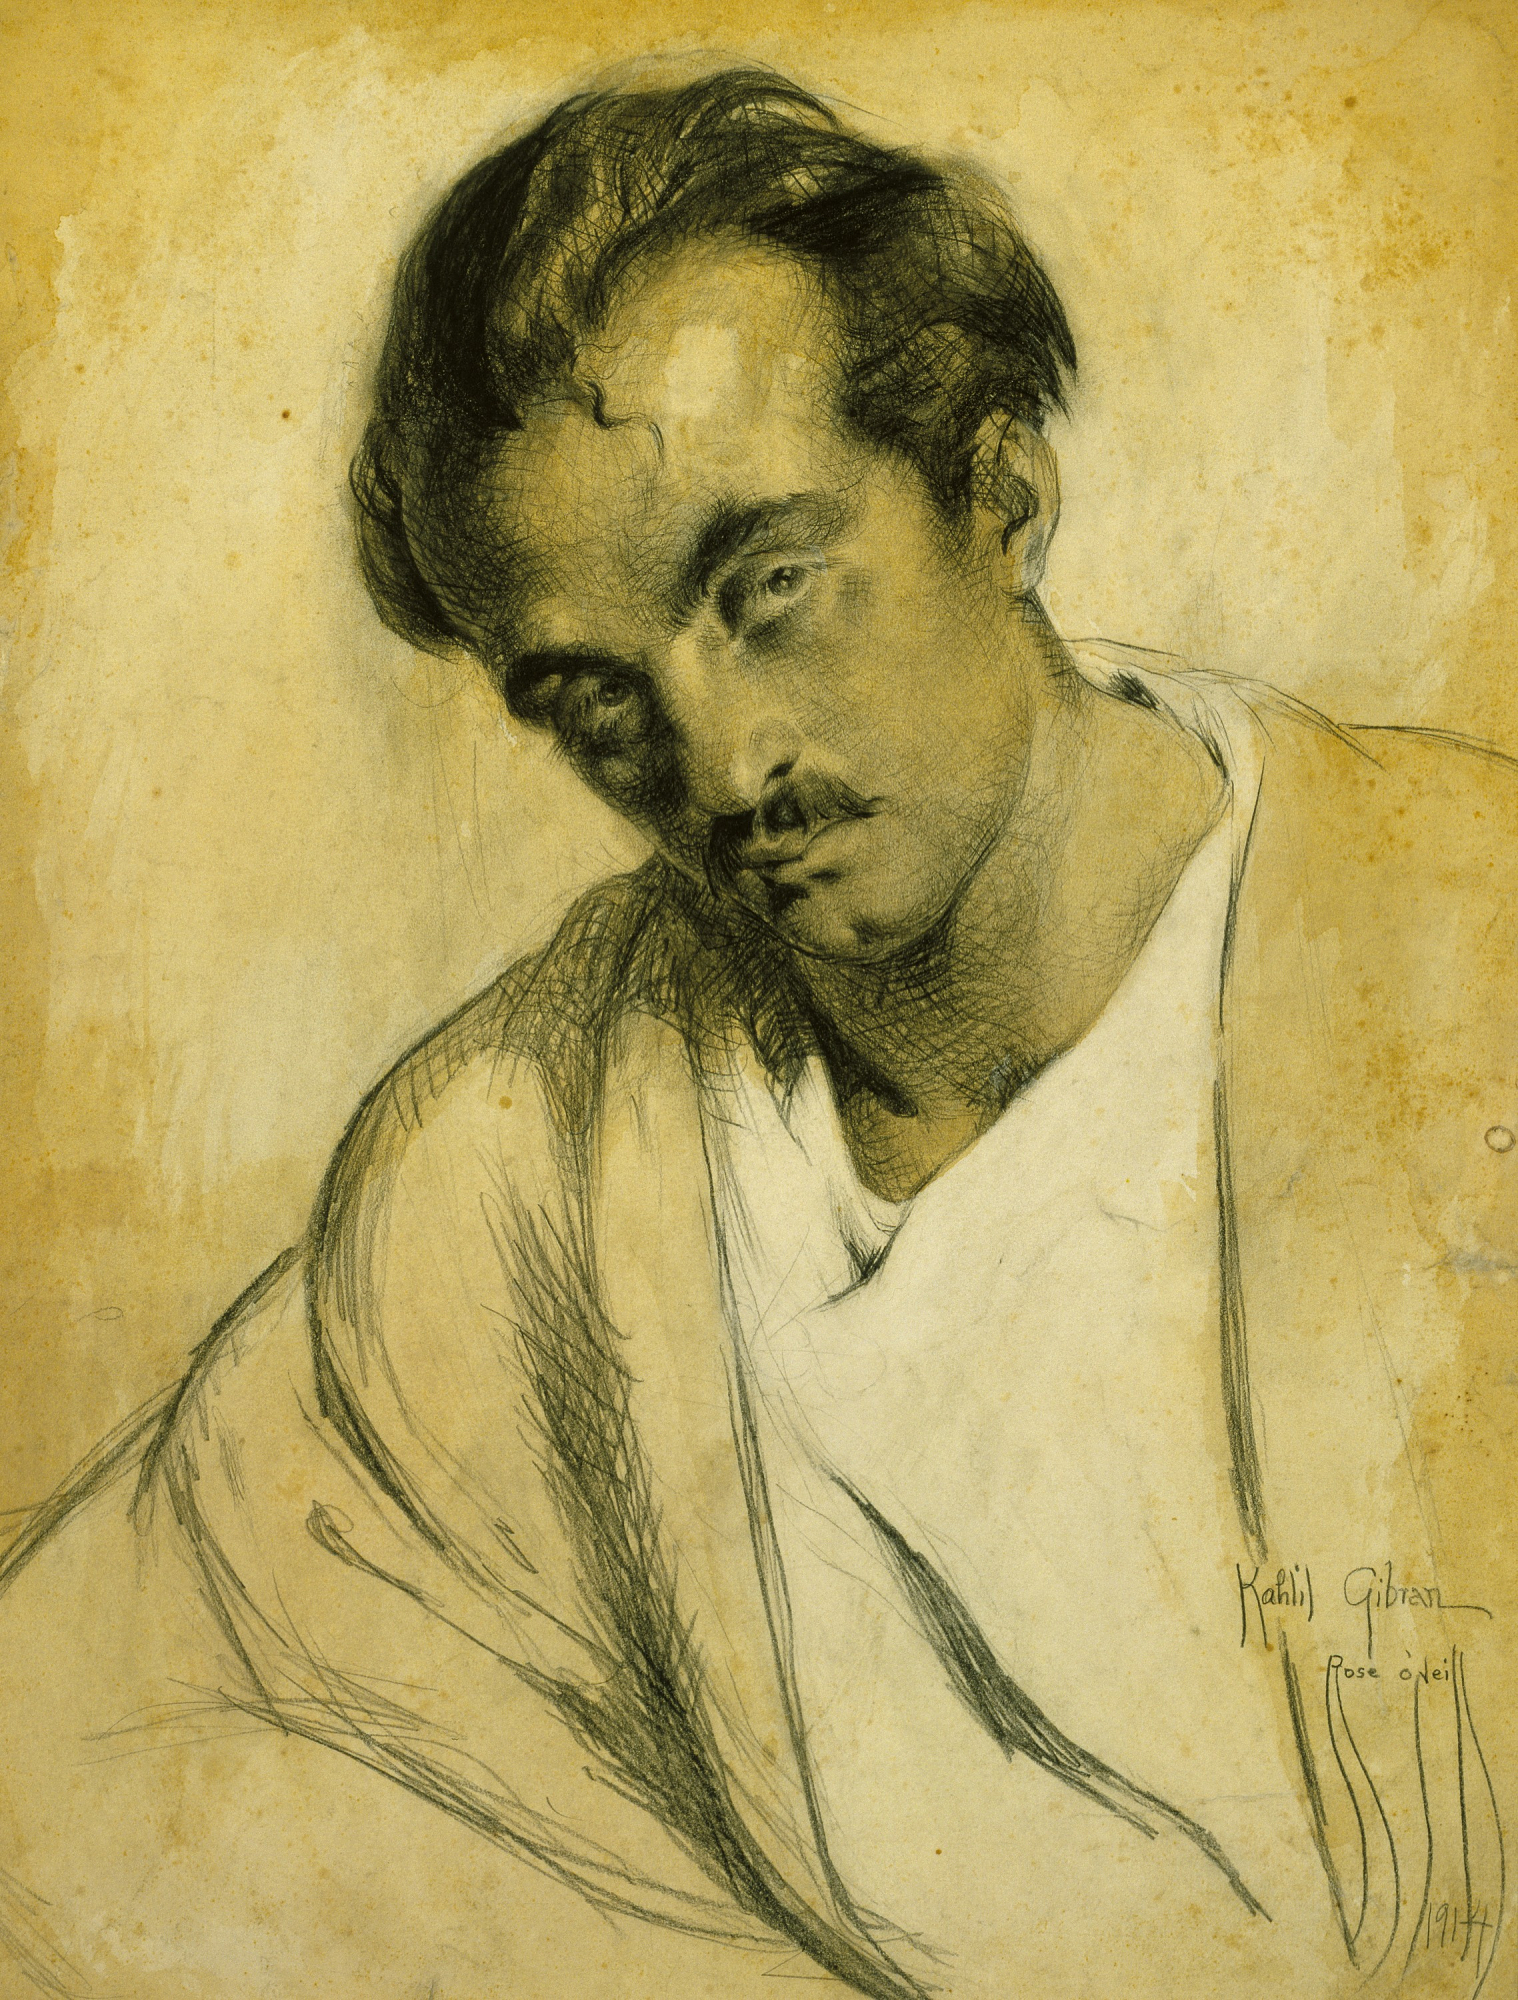 Portrait of Kahlil Gibran by Rose O'Neill